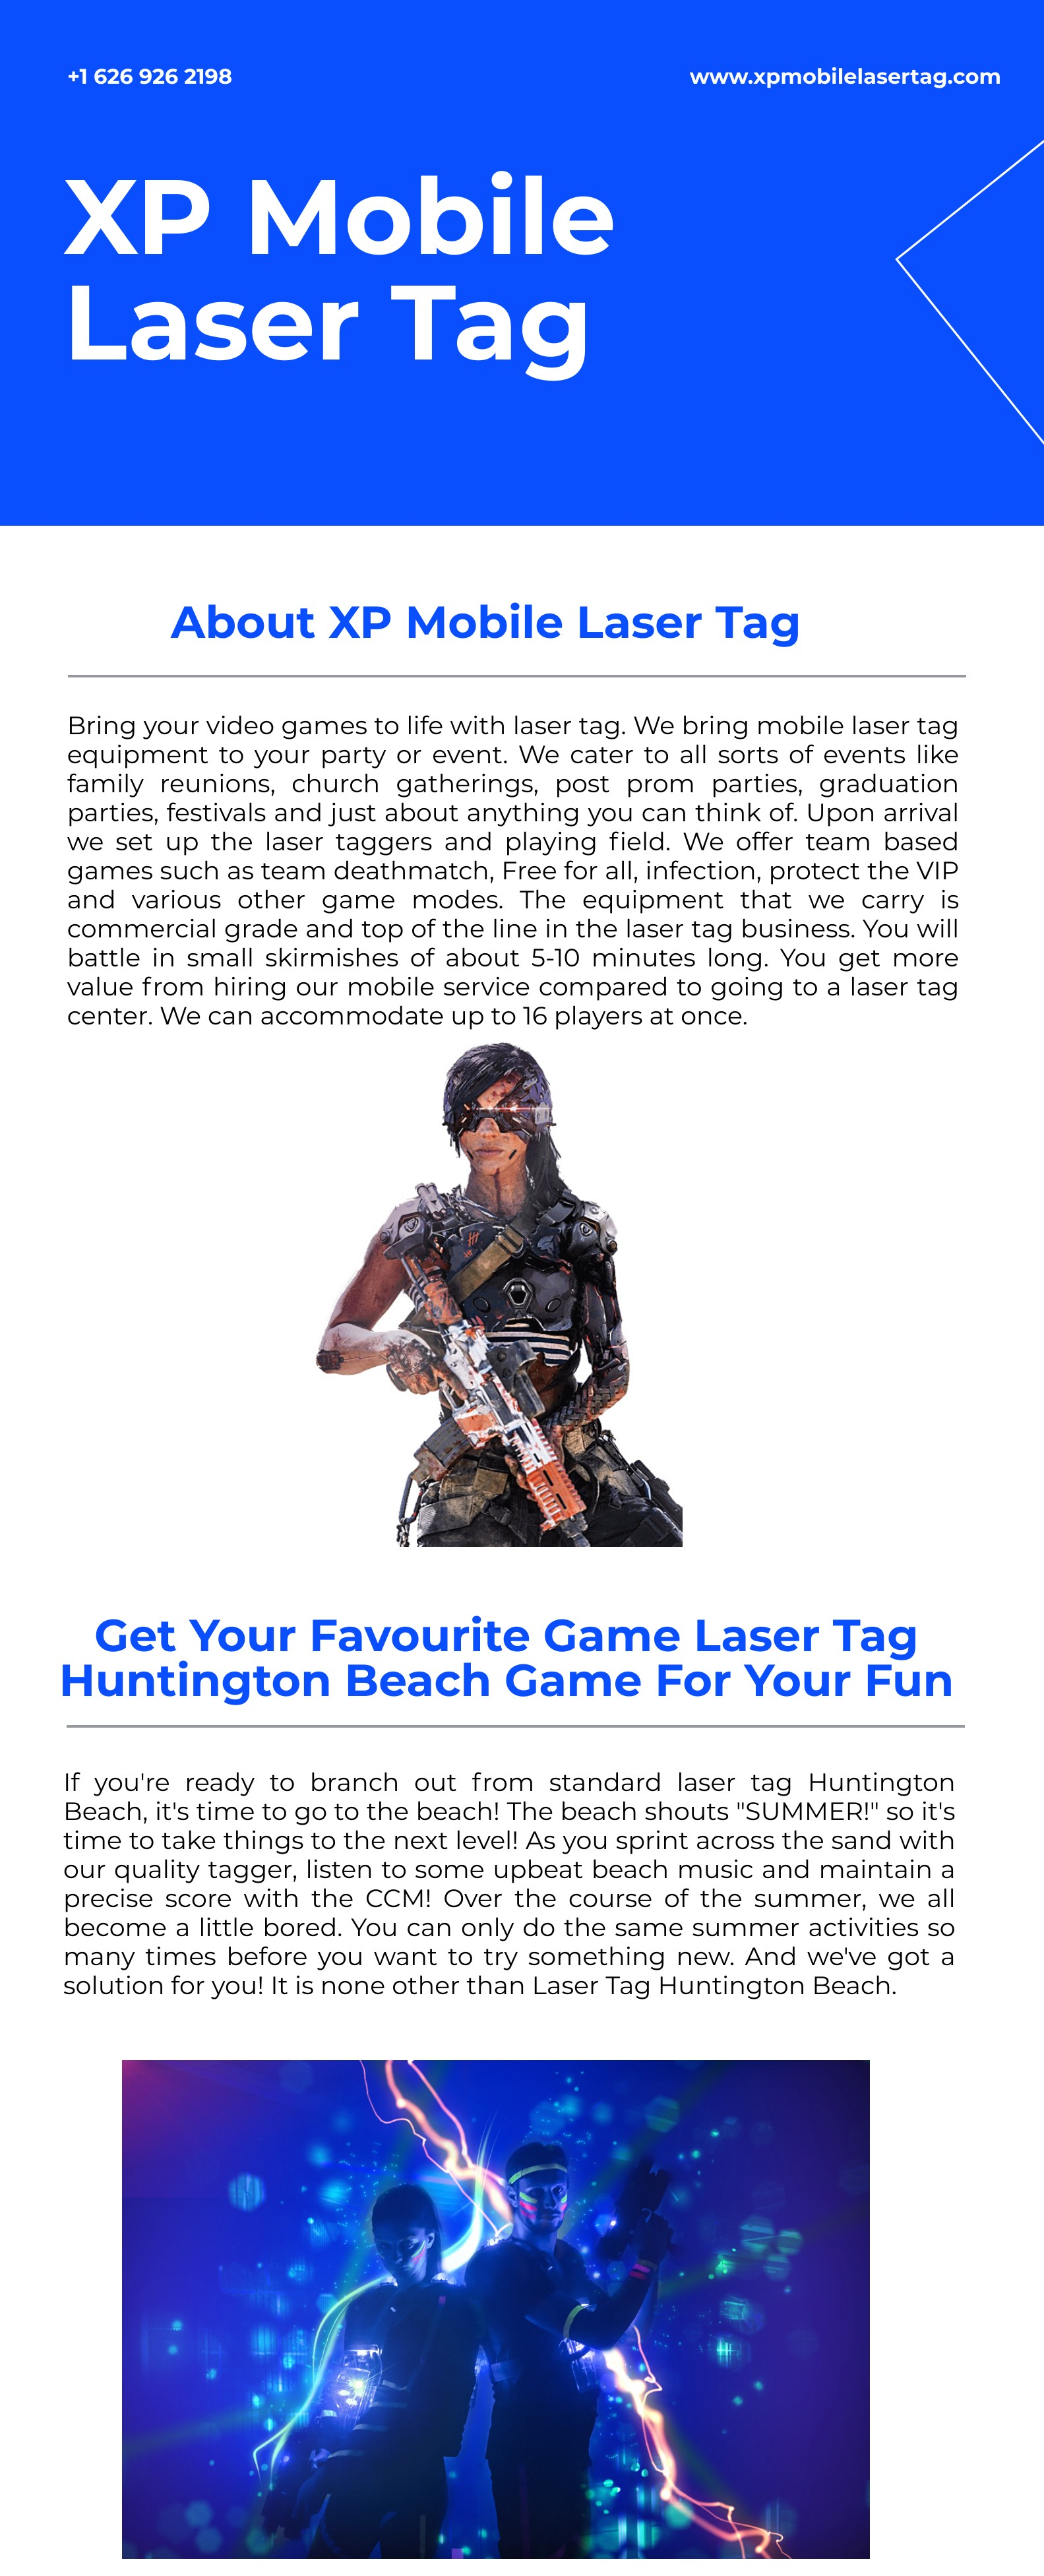 Embracing from the gaming culture – Find the best Laser Tag Newport Beach Game: